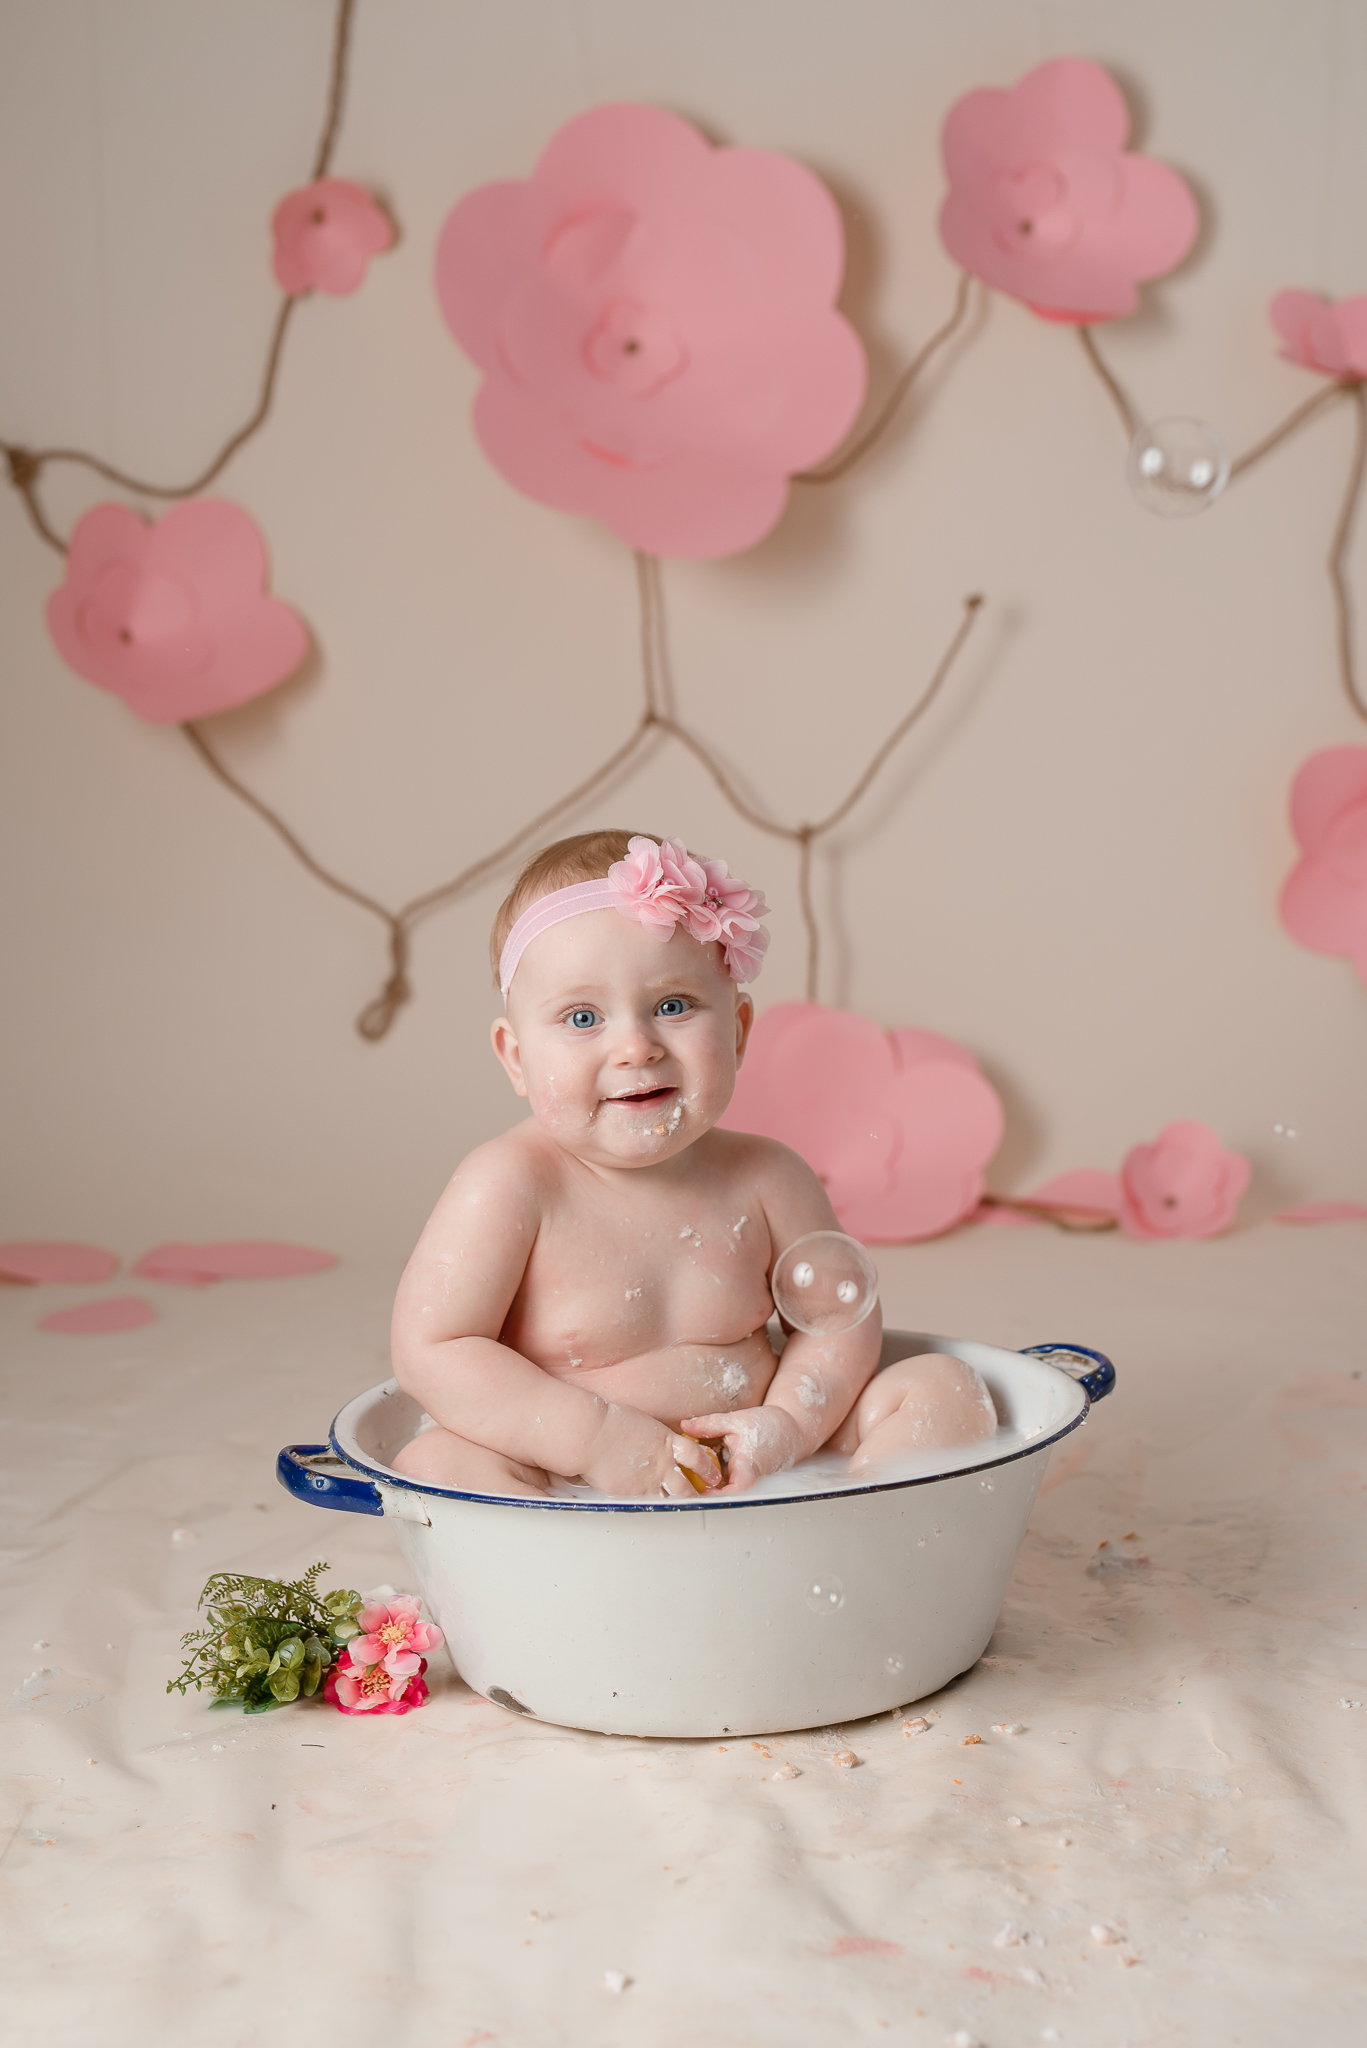 FirstBirthday509NaomiLuciennePhotography032019-Edit.jpg